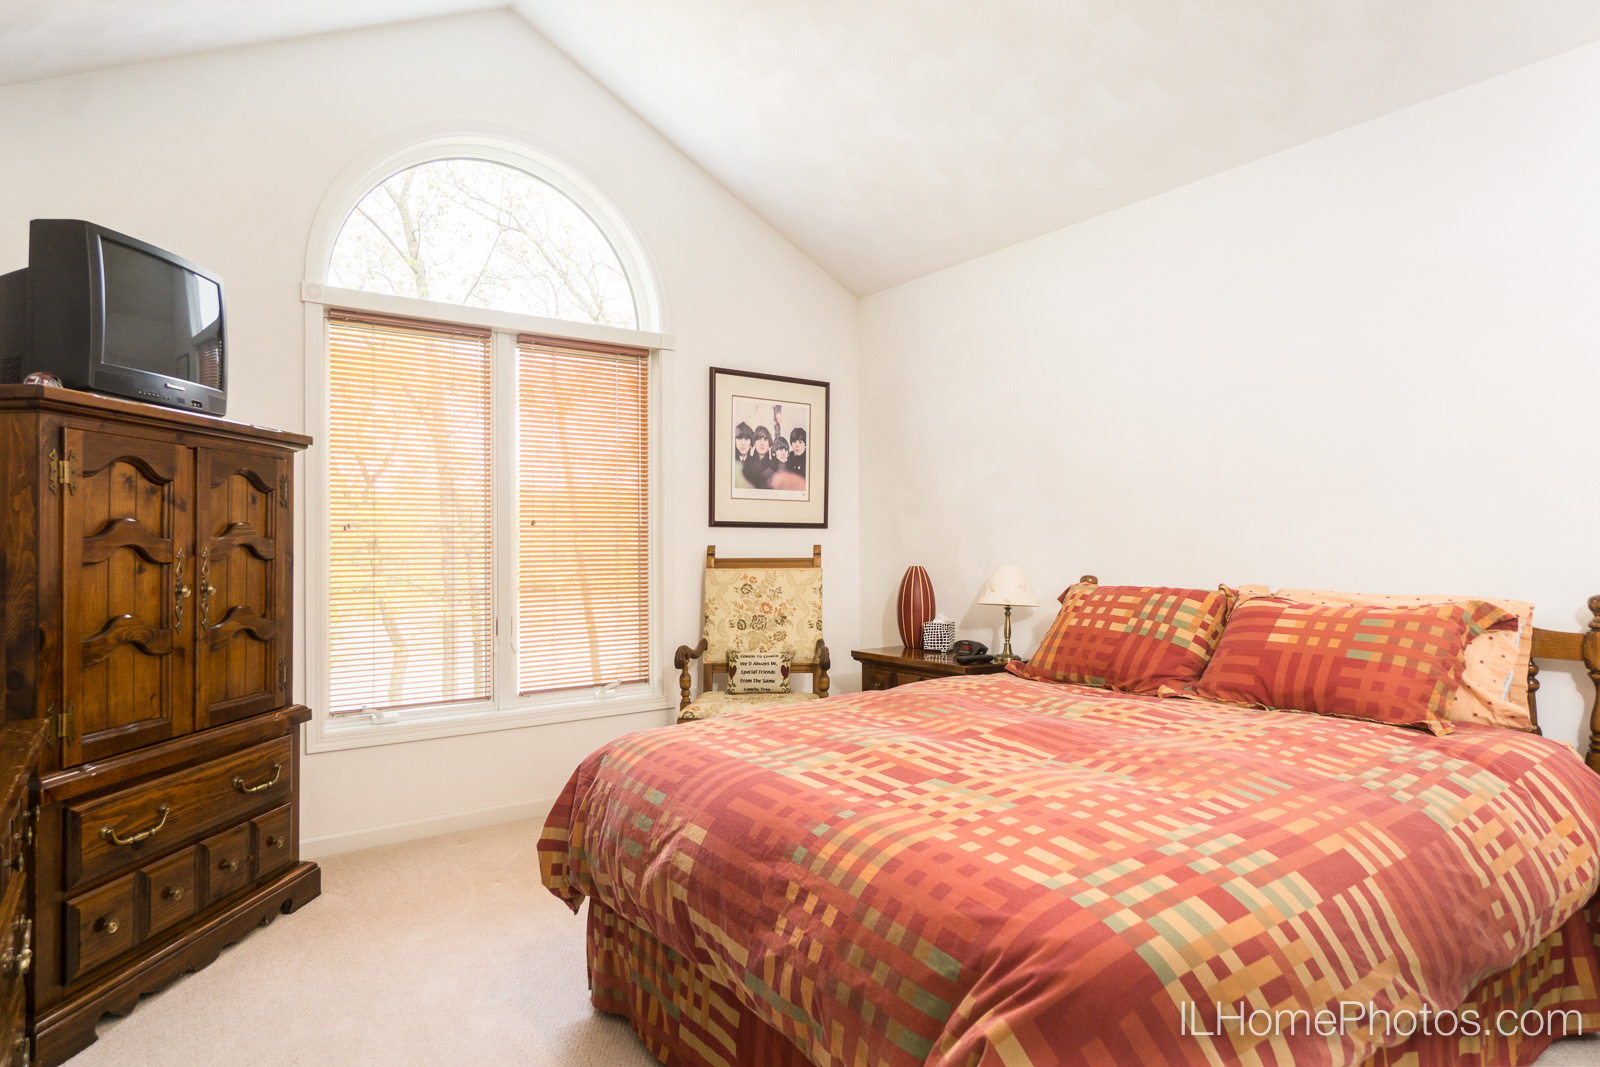 Interior bedroom photograph for real estate in Pekin/Peoria :: Illinois Home Photography by Michael Gowin, Lincoln, IL